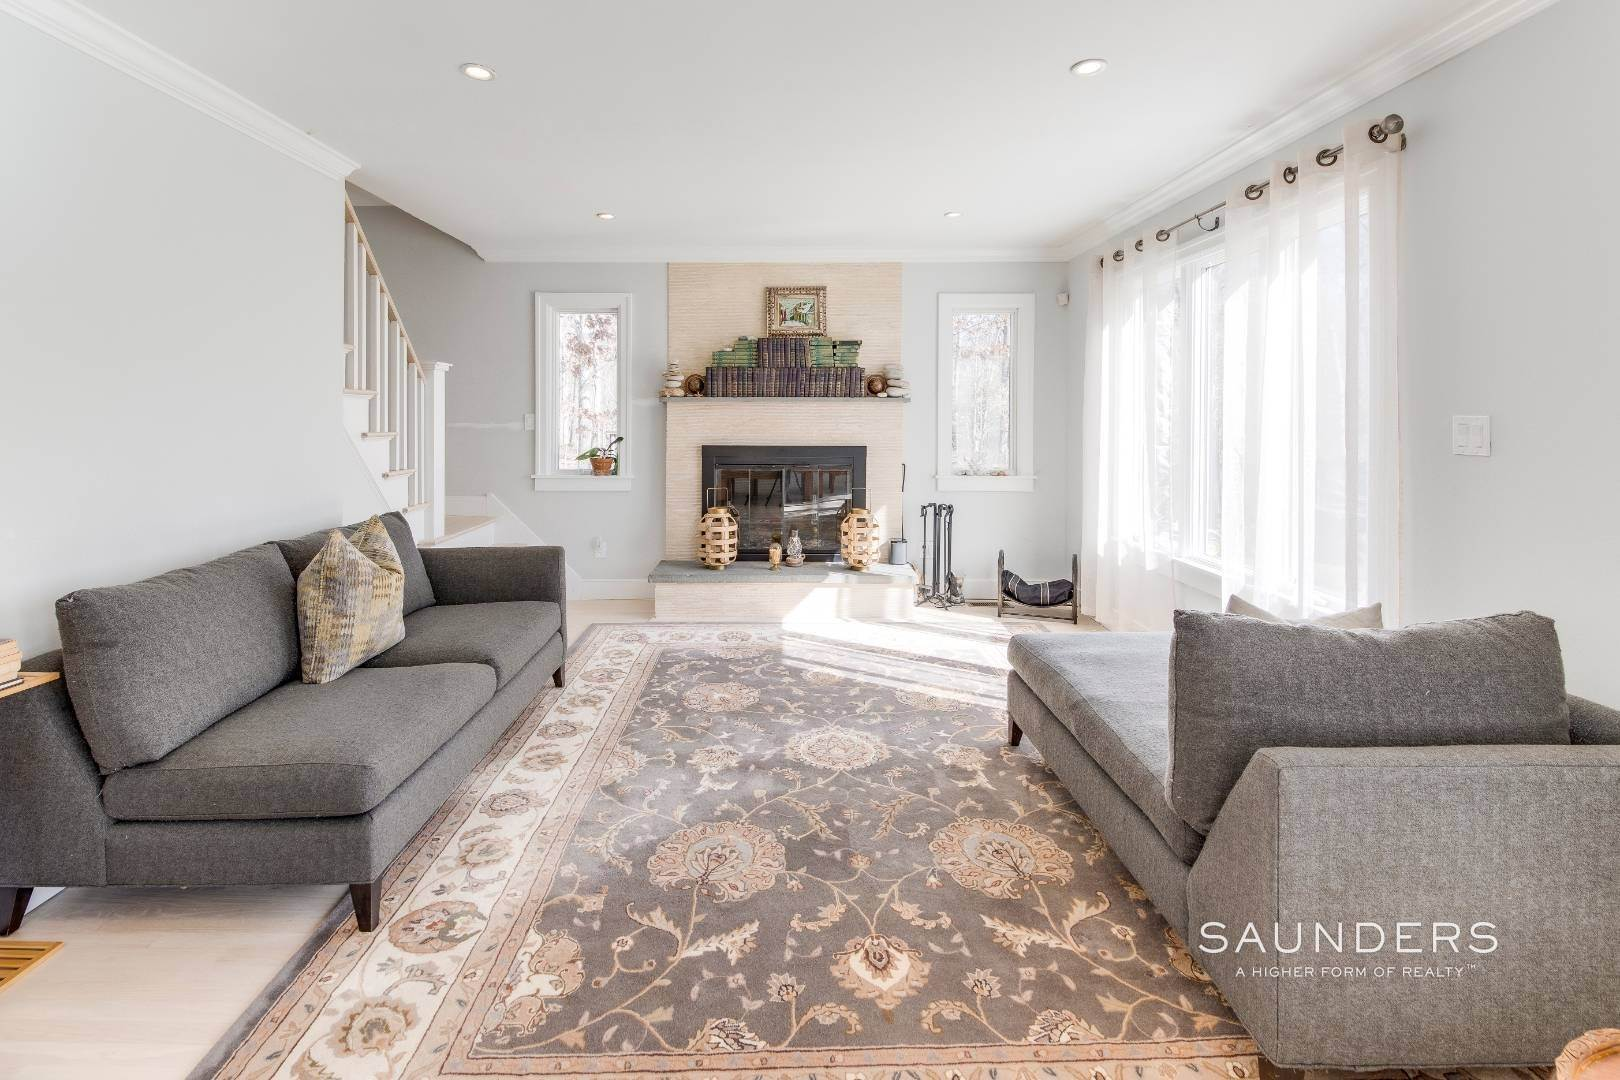 4. Single Family Homes for Sale at Clearwater Modern 5 Dorset Road, East Hampton, East Hampton Town, NY 11937